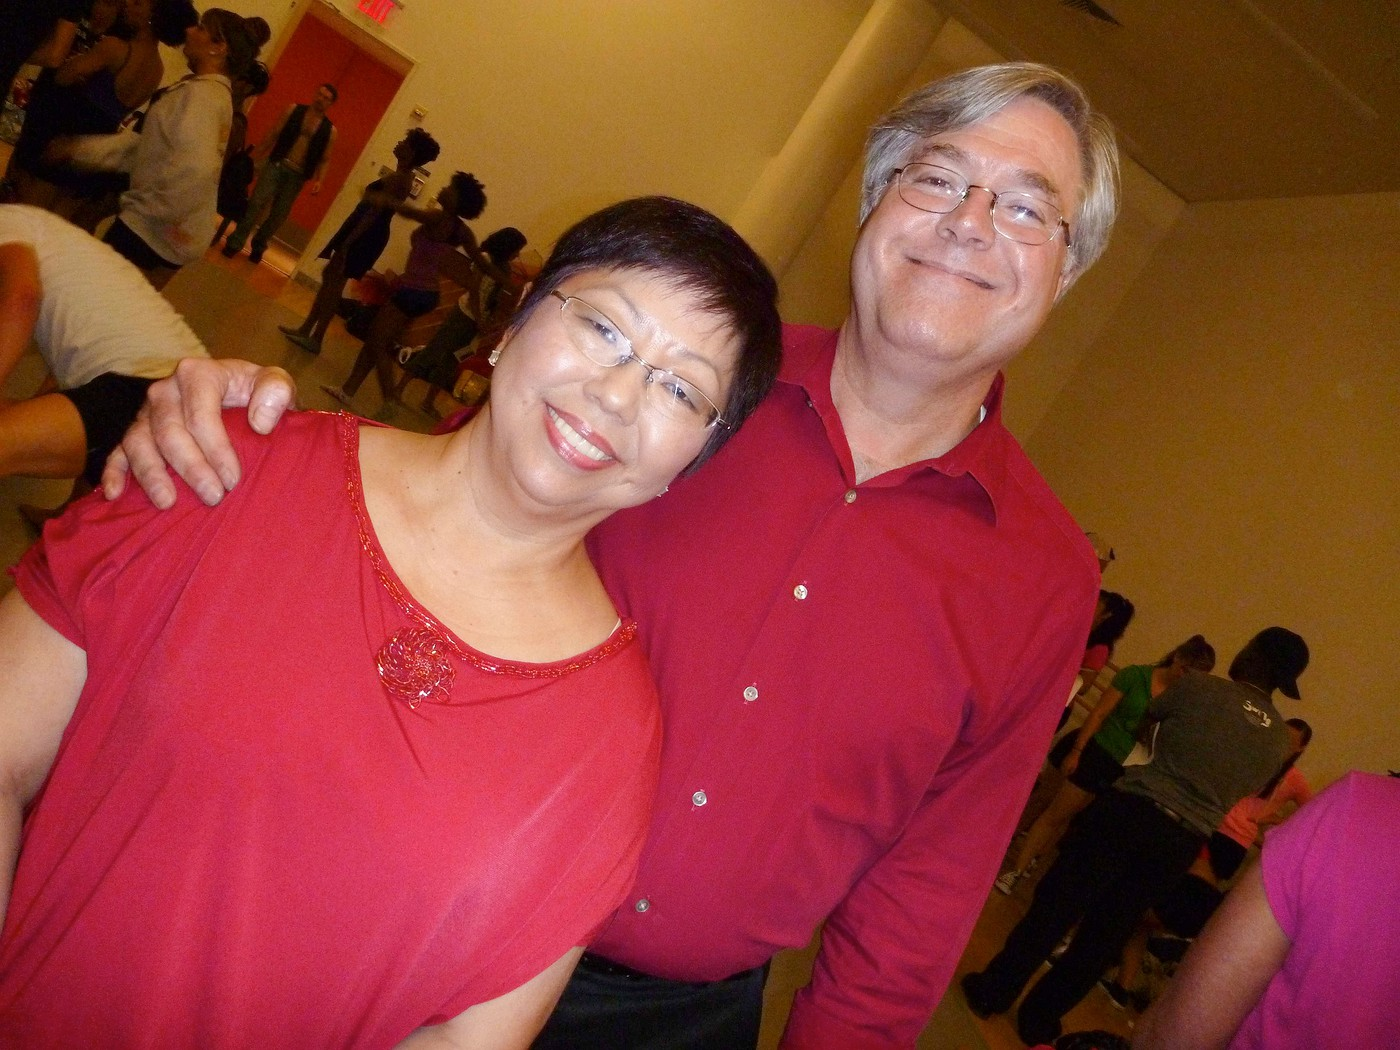 Doug & Mary Holaday - Connecitcut West Coast Swing Performance Group at Alvin Ailey Ciitgroup Theater